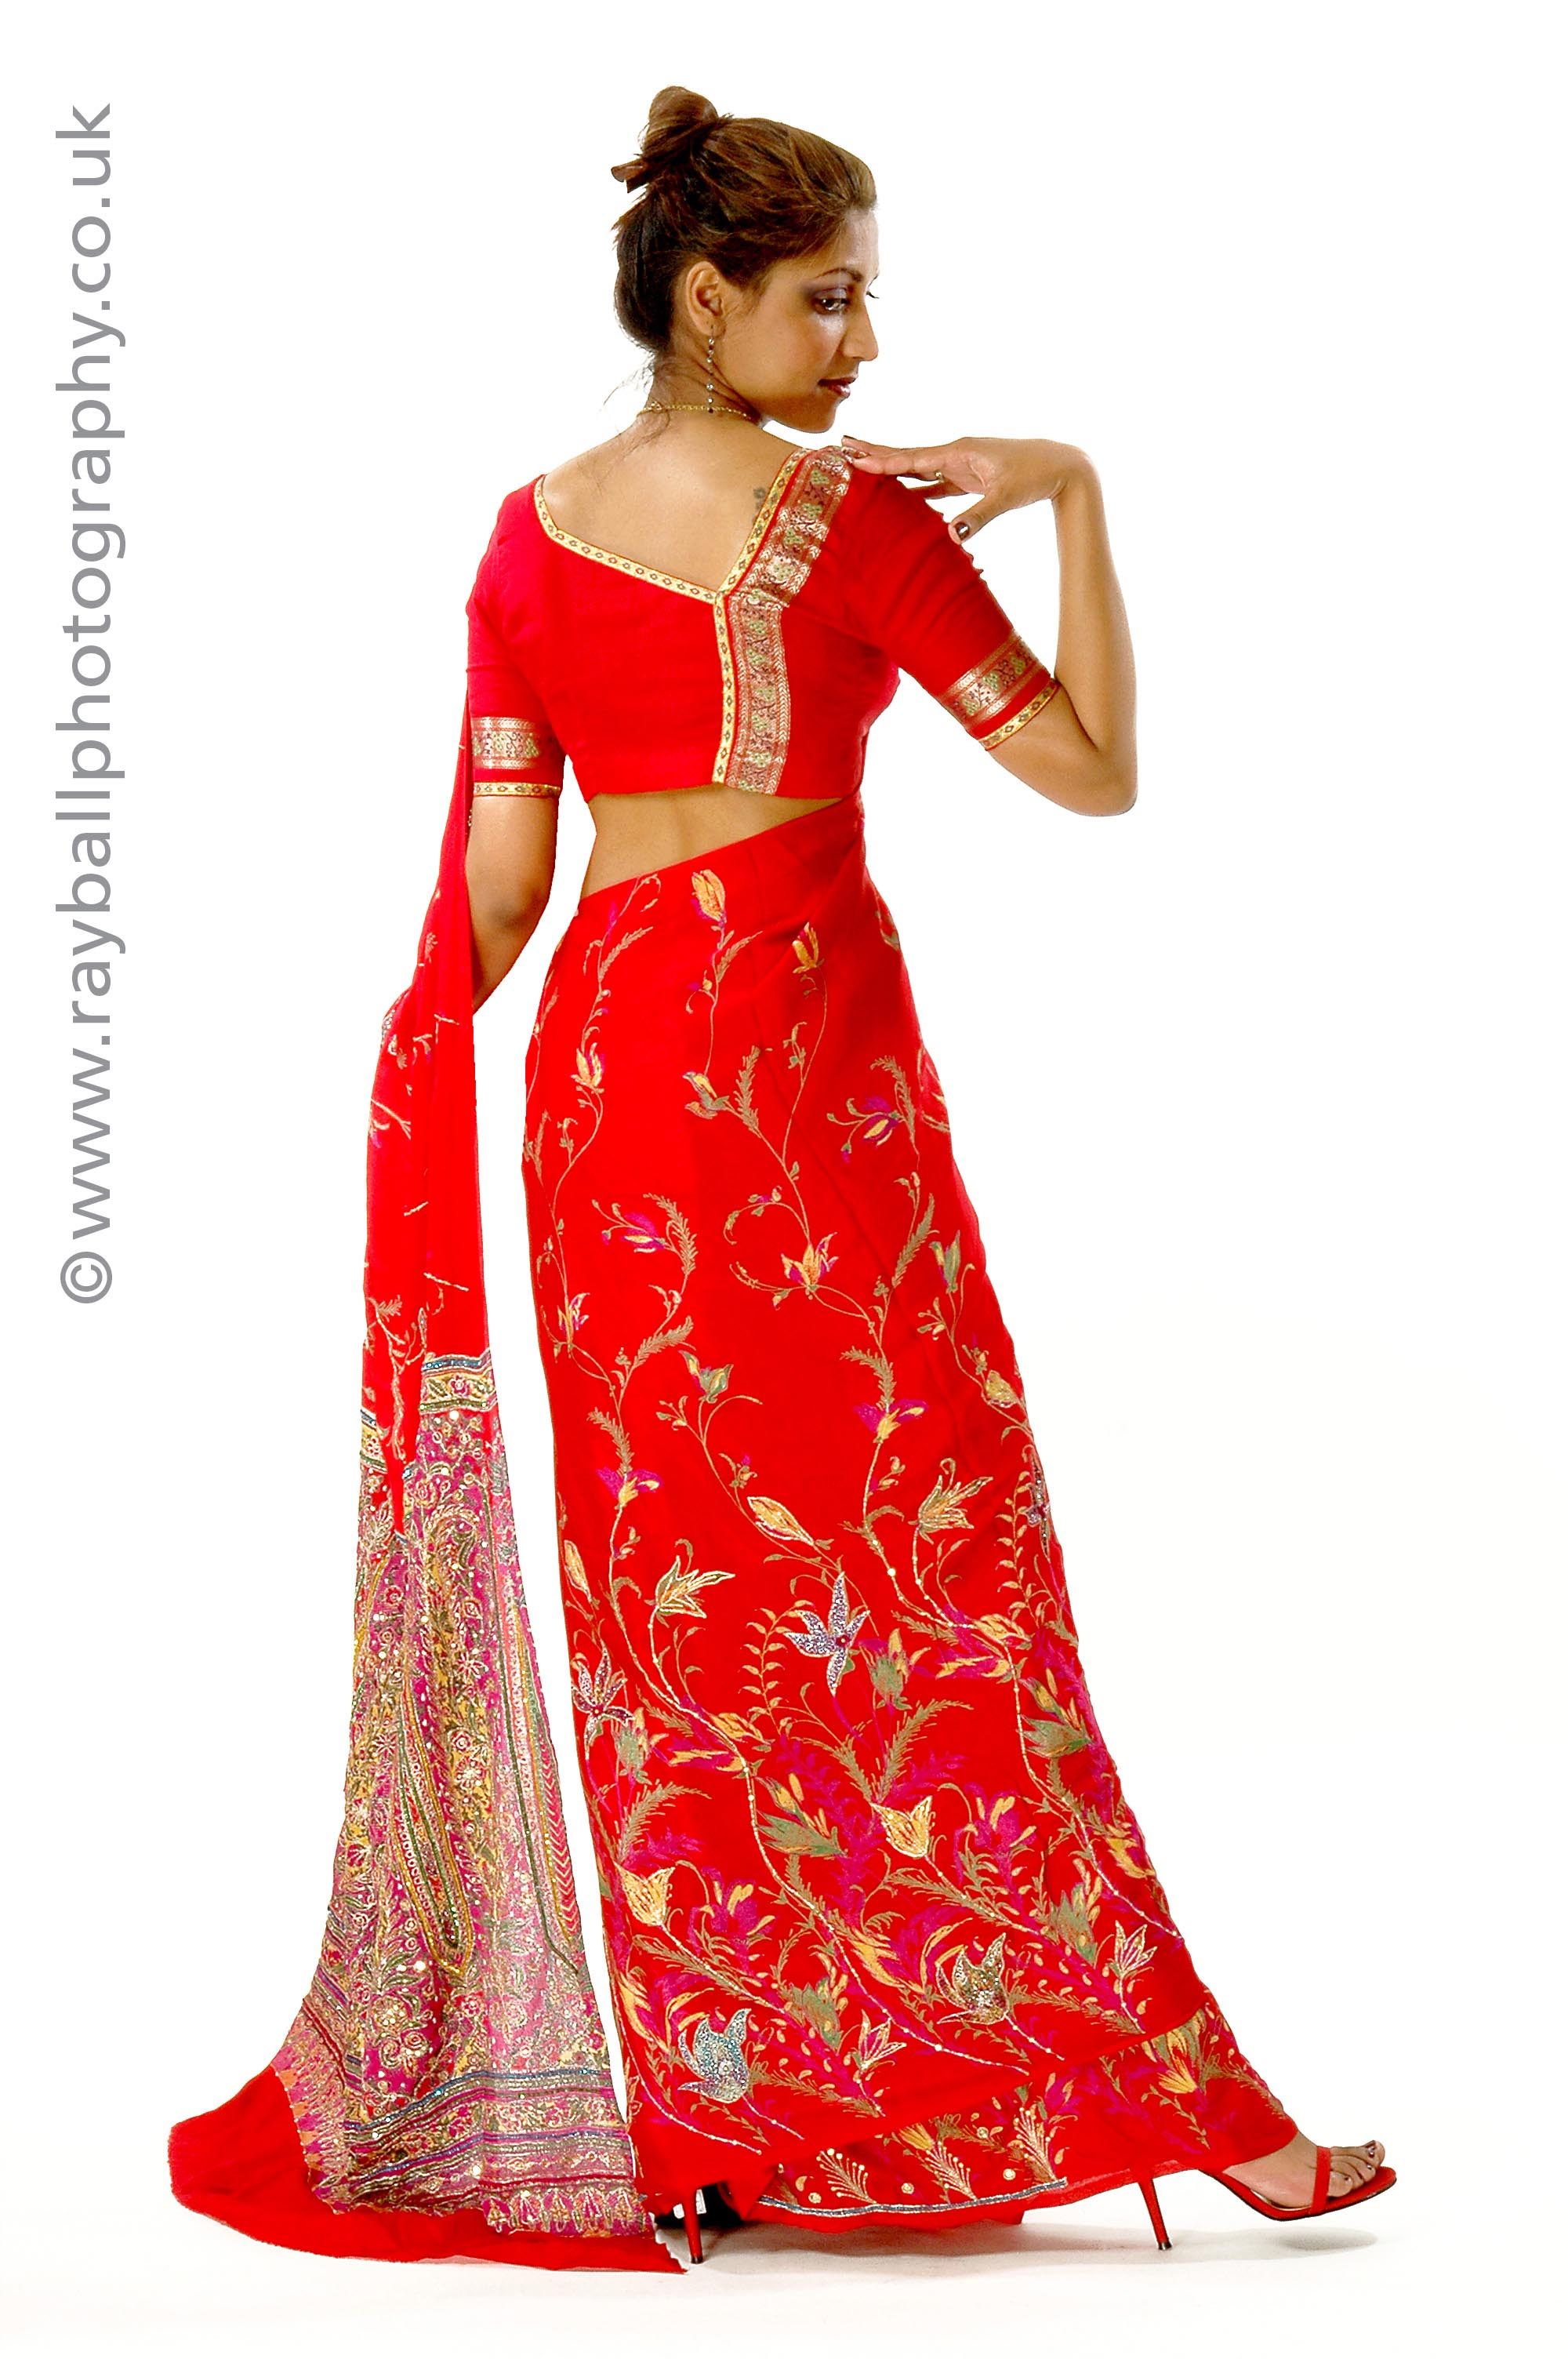 Ewell model wearing sari at Epsom Photography Studio.